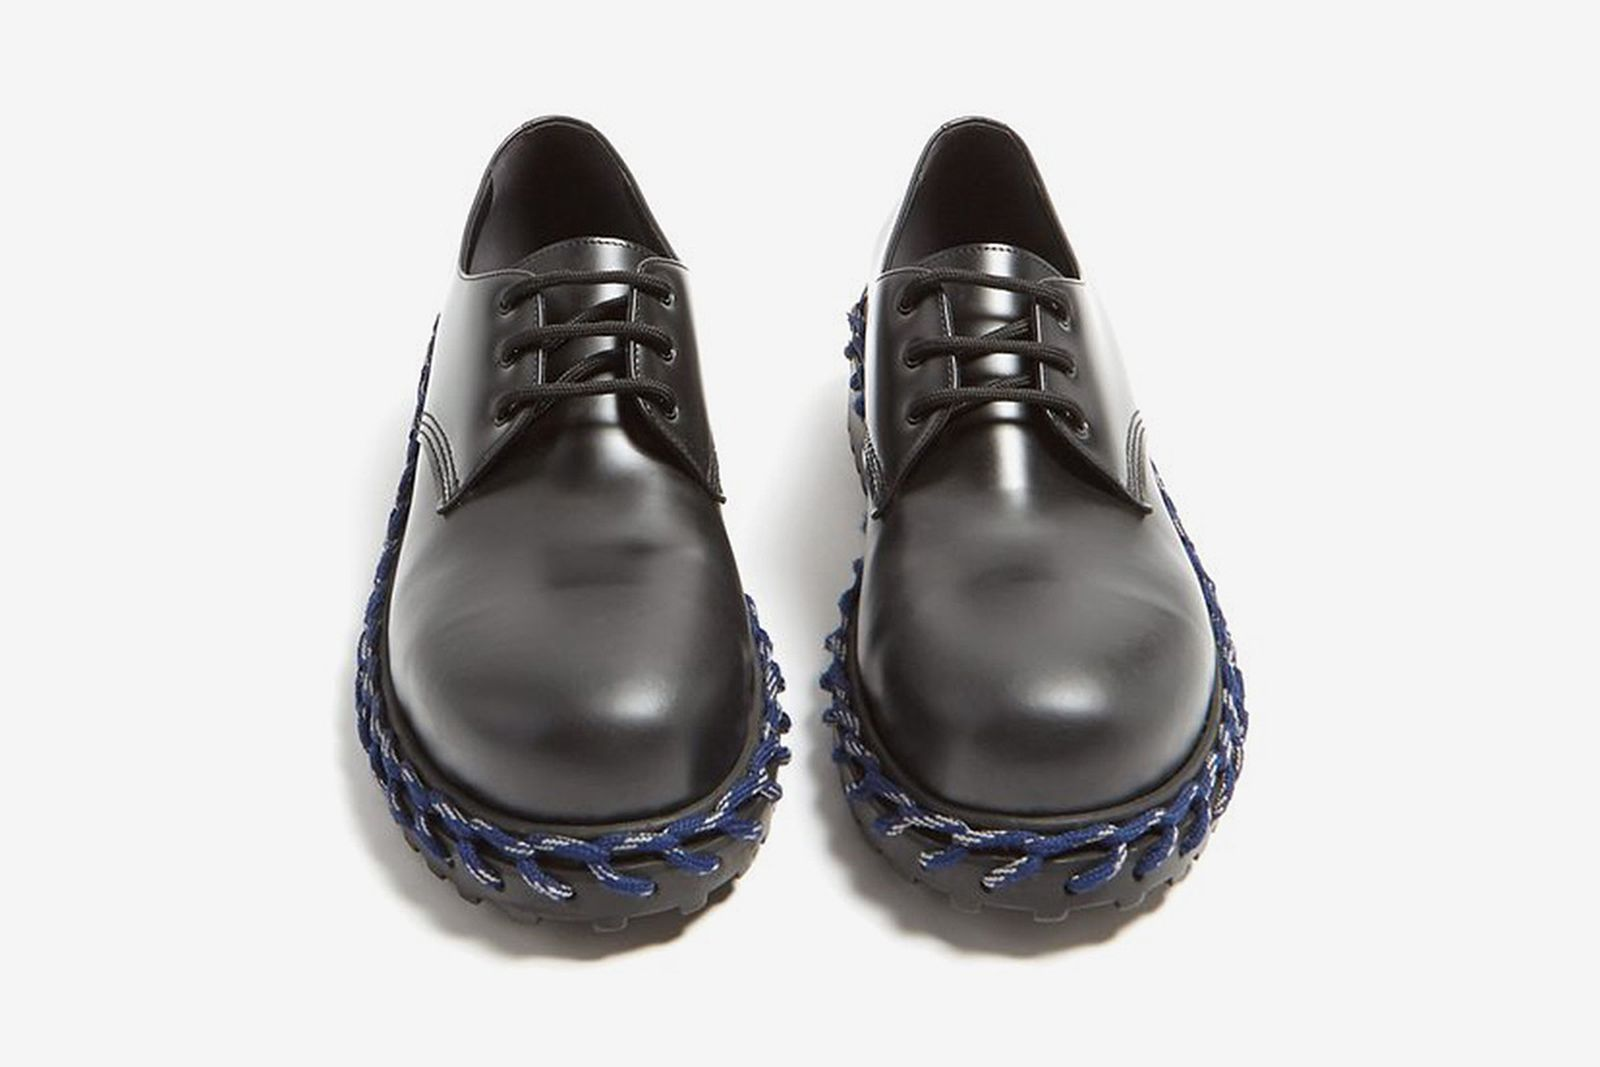 balenciaga laced sole derby shoes release date price Demna Gsvsalia